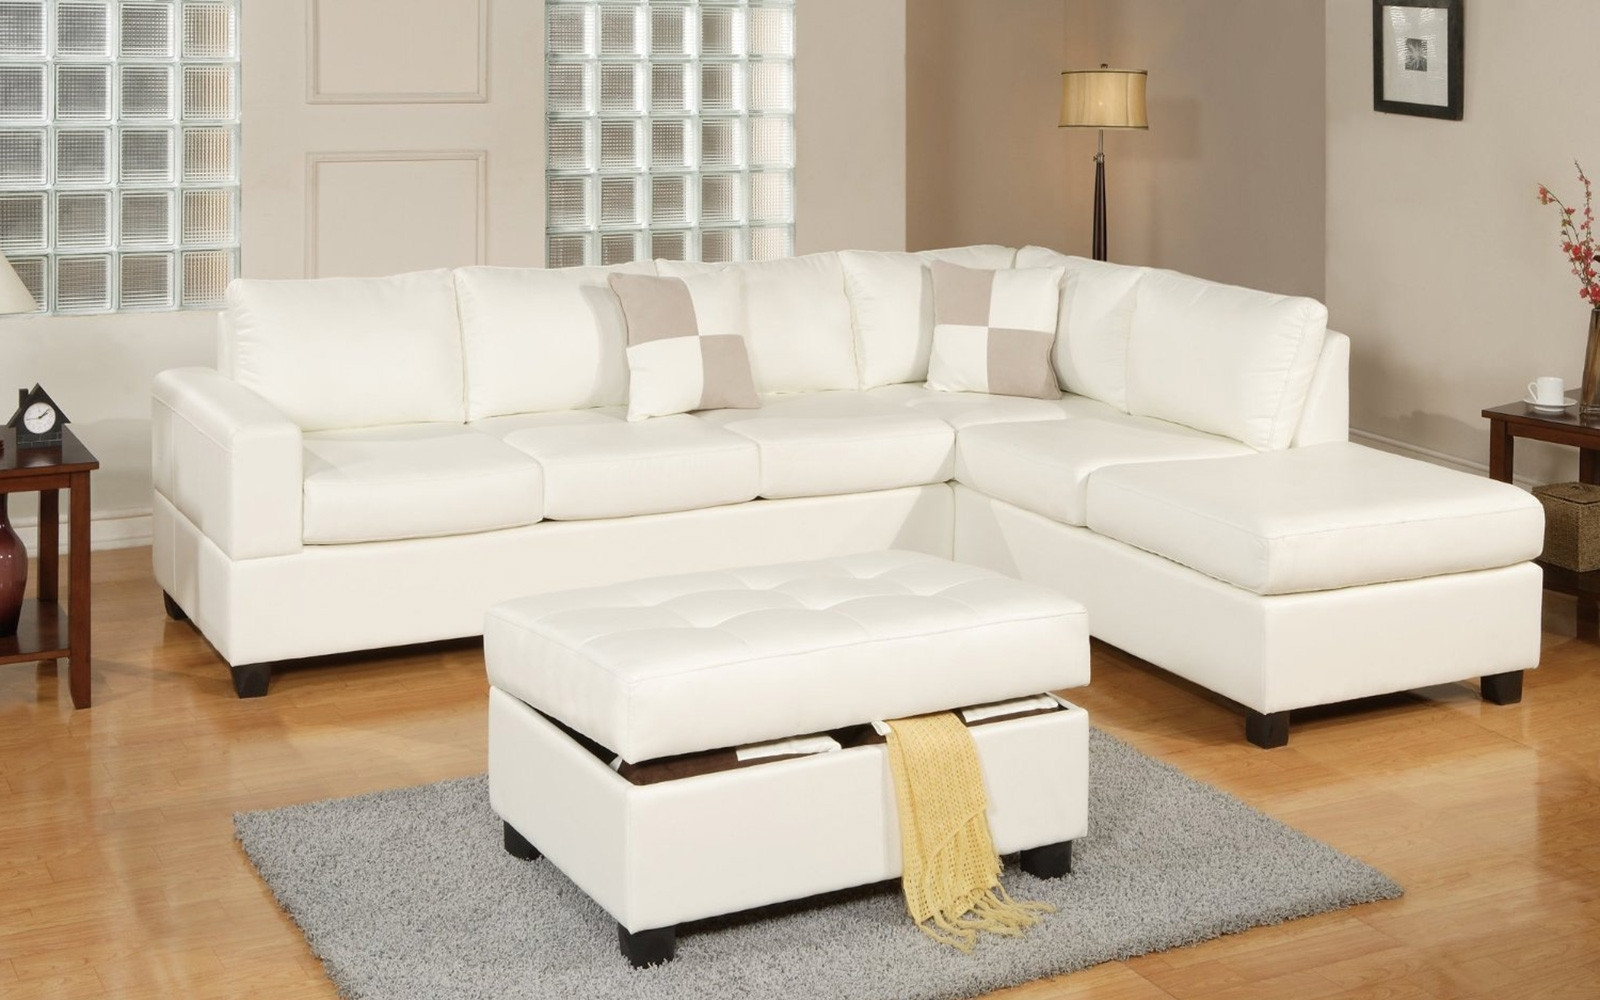 2017 3 Piece Modern Reversible Tufted Bonded Leather Sectional Sofa With Cream Chaise Sofas (View 14 of 15)